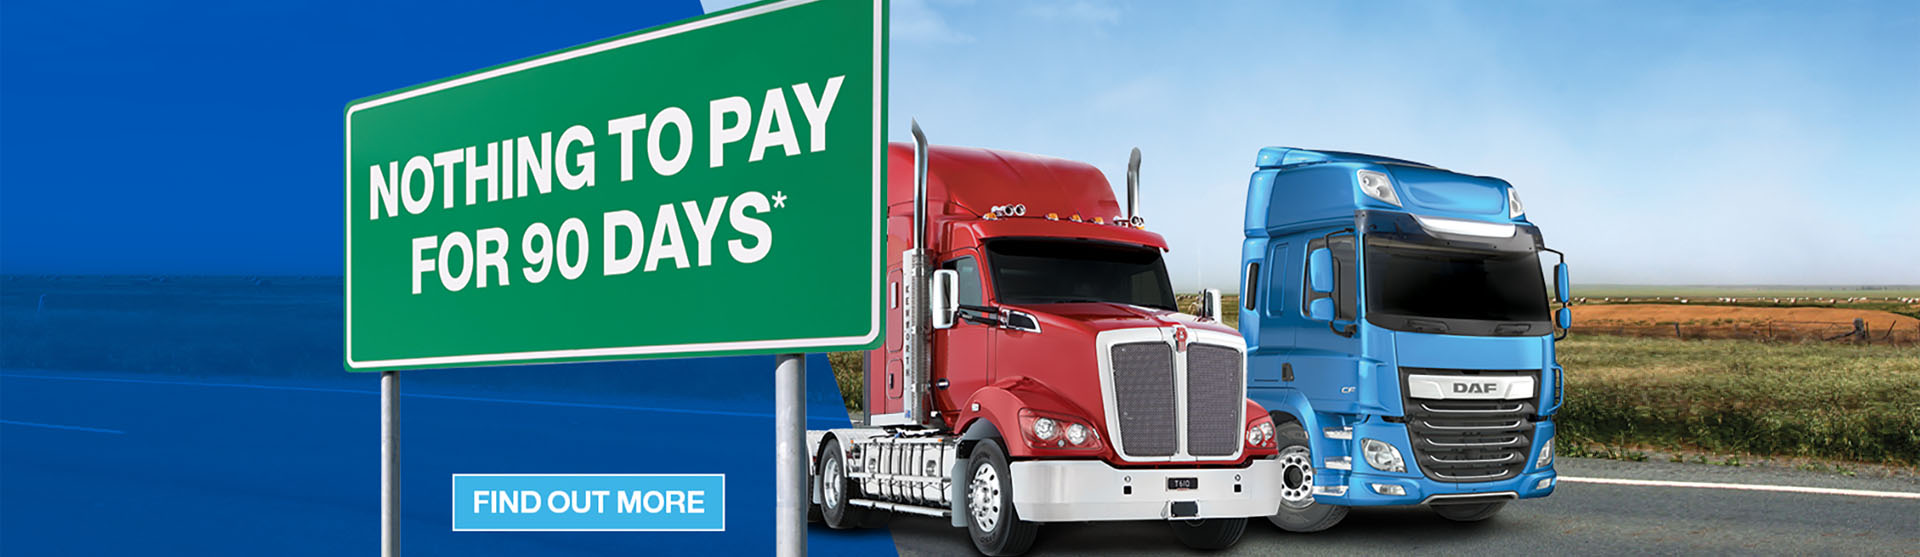 Kenworth DAF Nothing To Pay For 90 Days